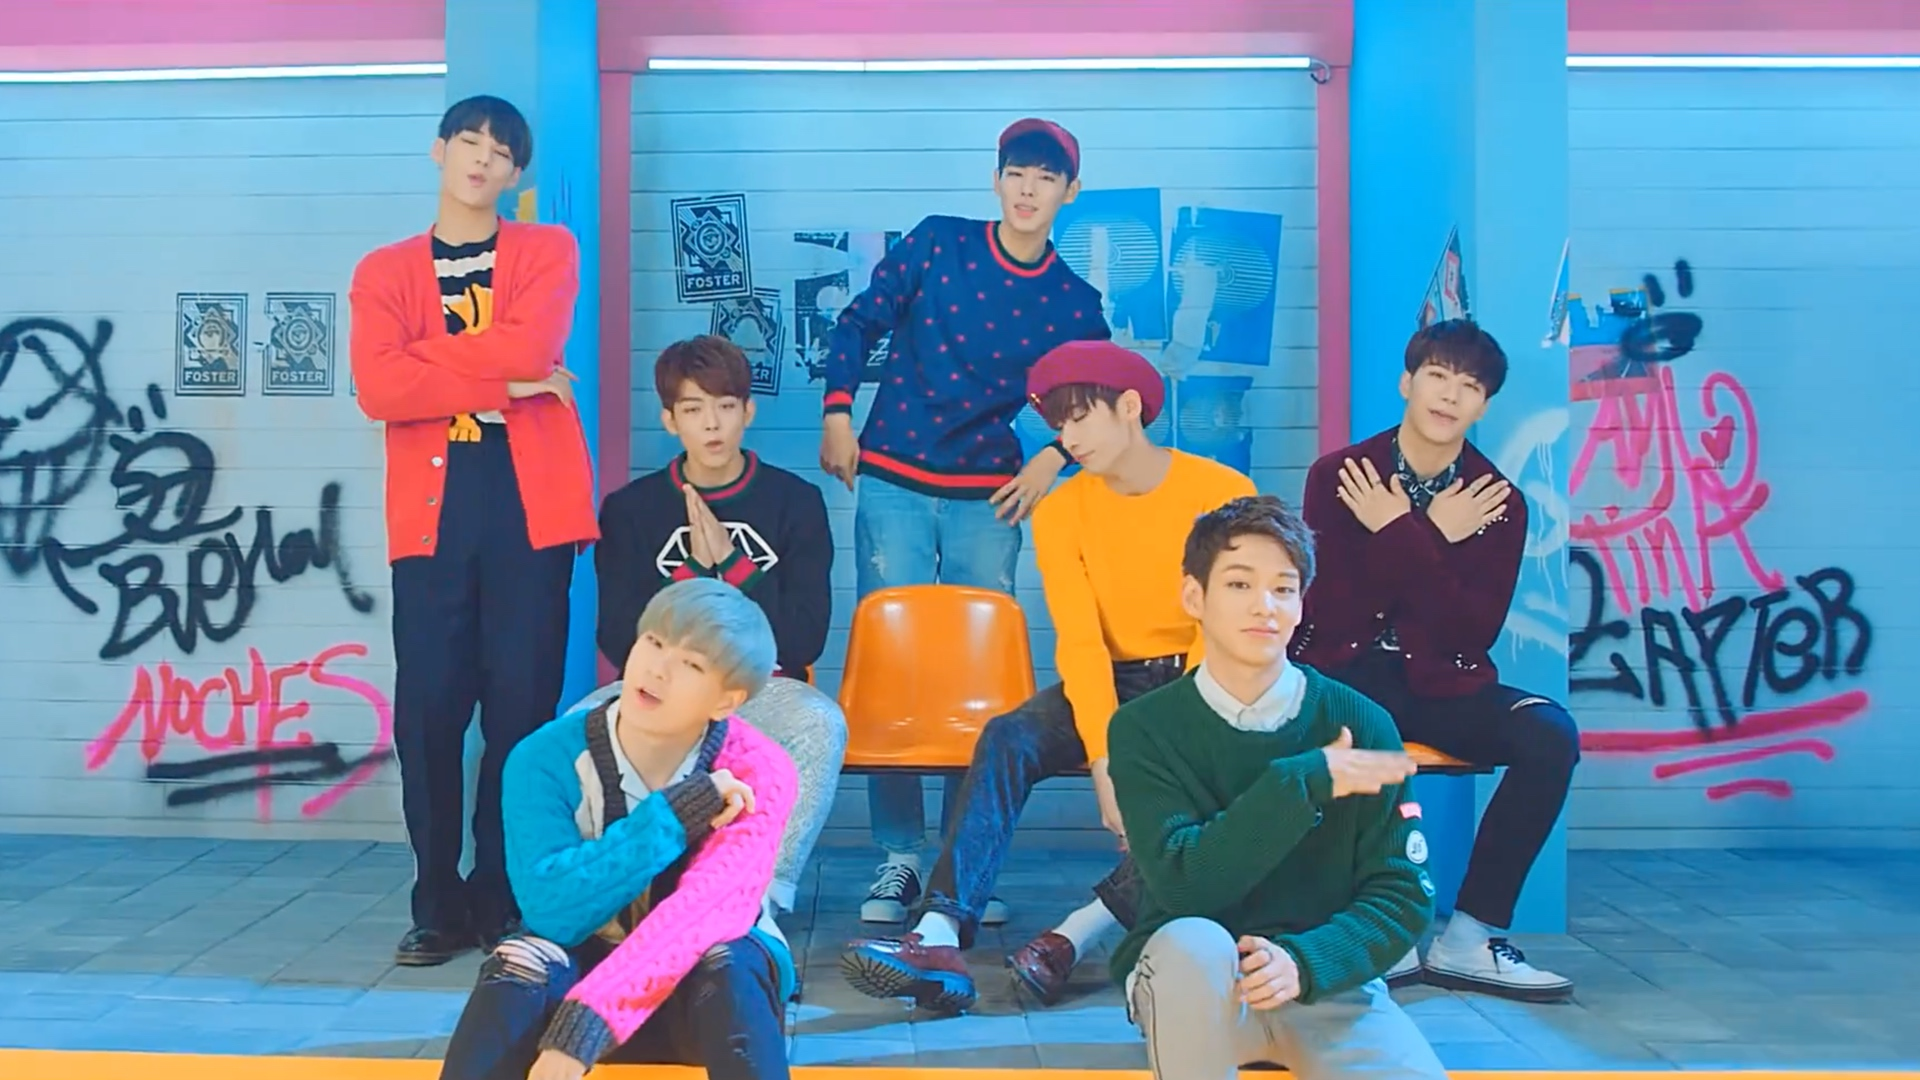 VICTON Opens Up About Their Challenges To Debut As A Group